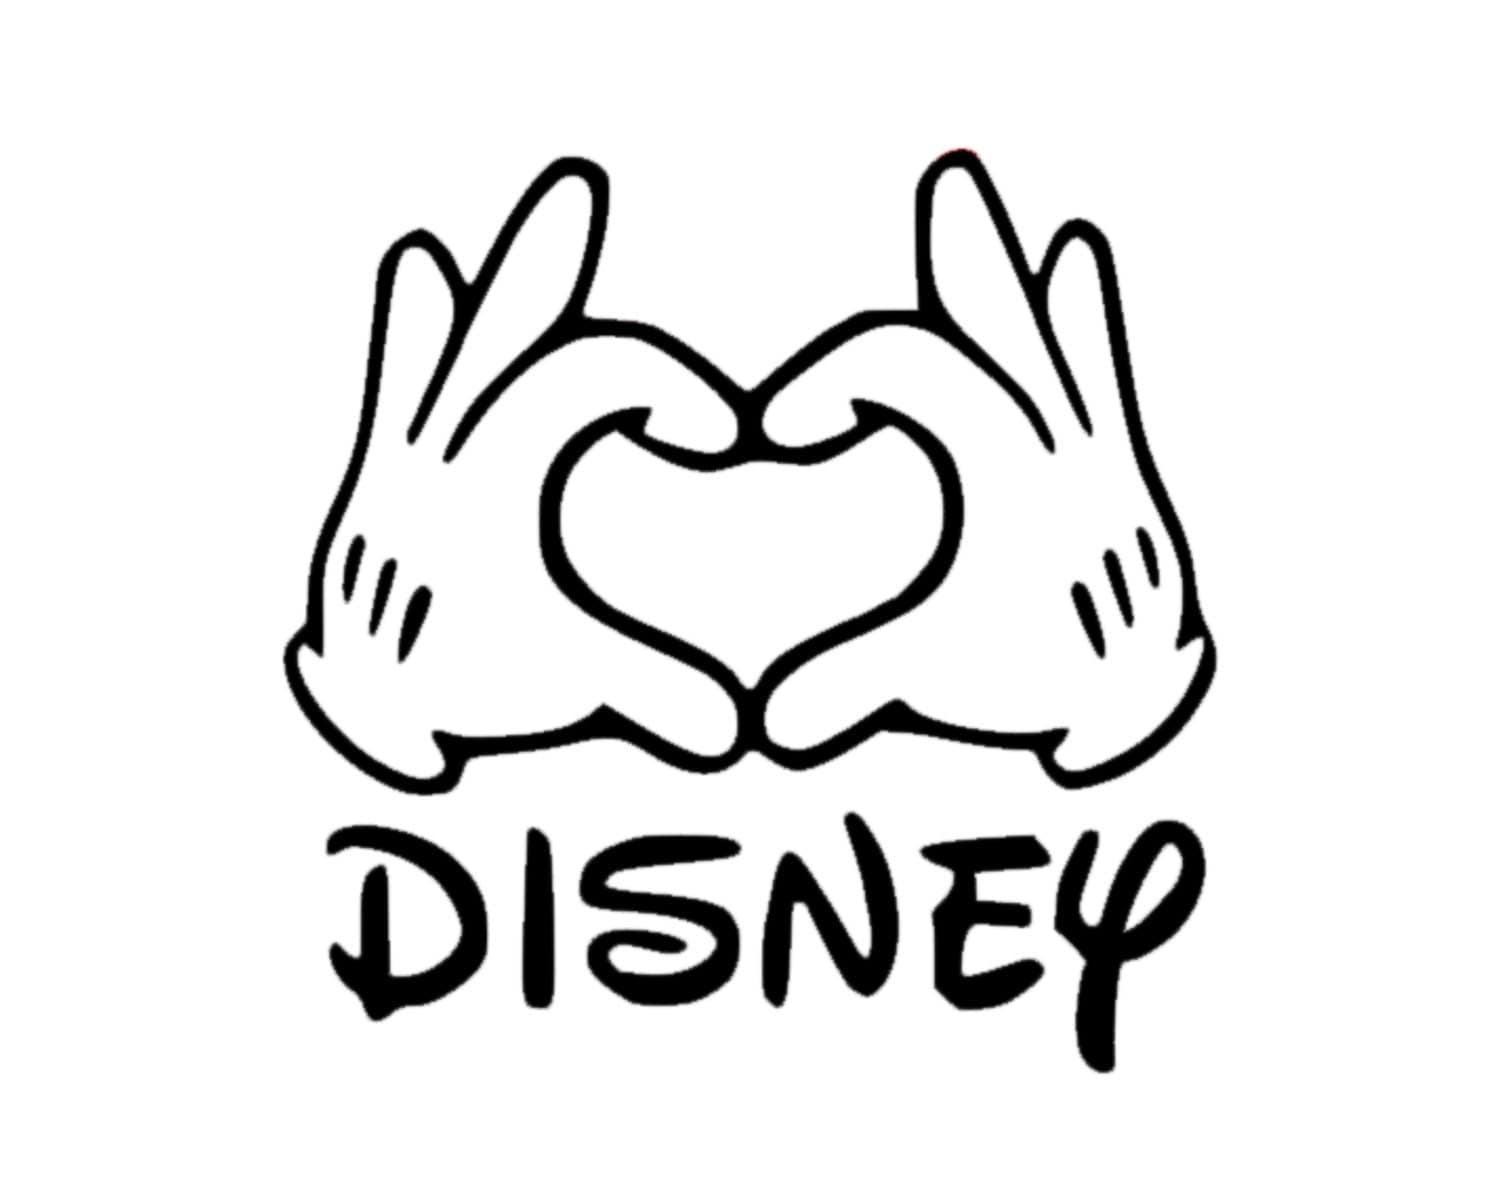 Disney Bound Peeking Mickey Mouse Decal besides Disney Castle Outline further My Patronus Is A Mickey Mouse Harry Potter Svg Cut File Set besides Stock Illustration Stars Silhouette Vector Symbol Icon Design Beautiful Illustration Isolated White Background Image90457190 in addition Disney Characters Outline Clipart. on disney castle outline